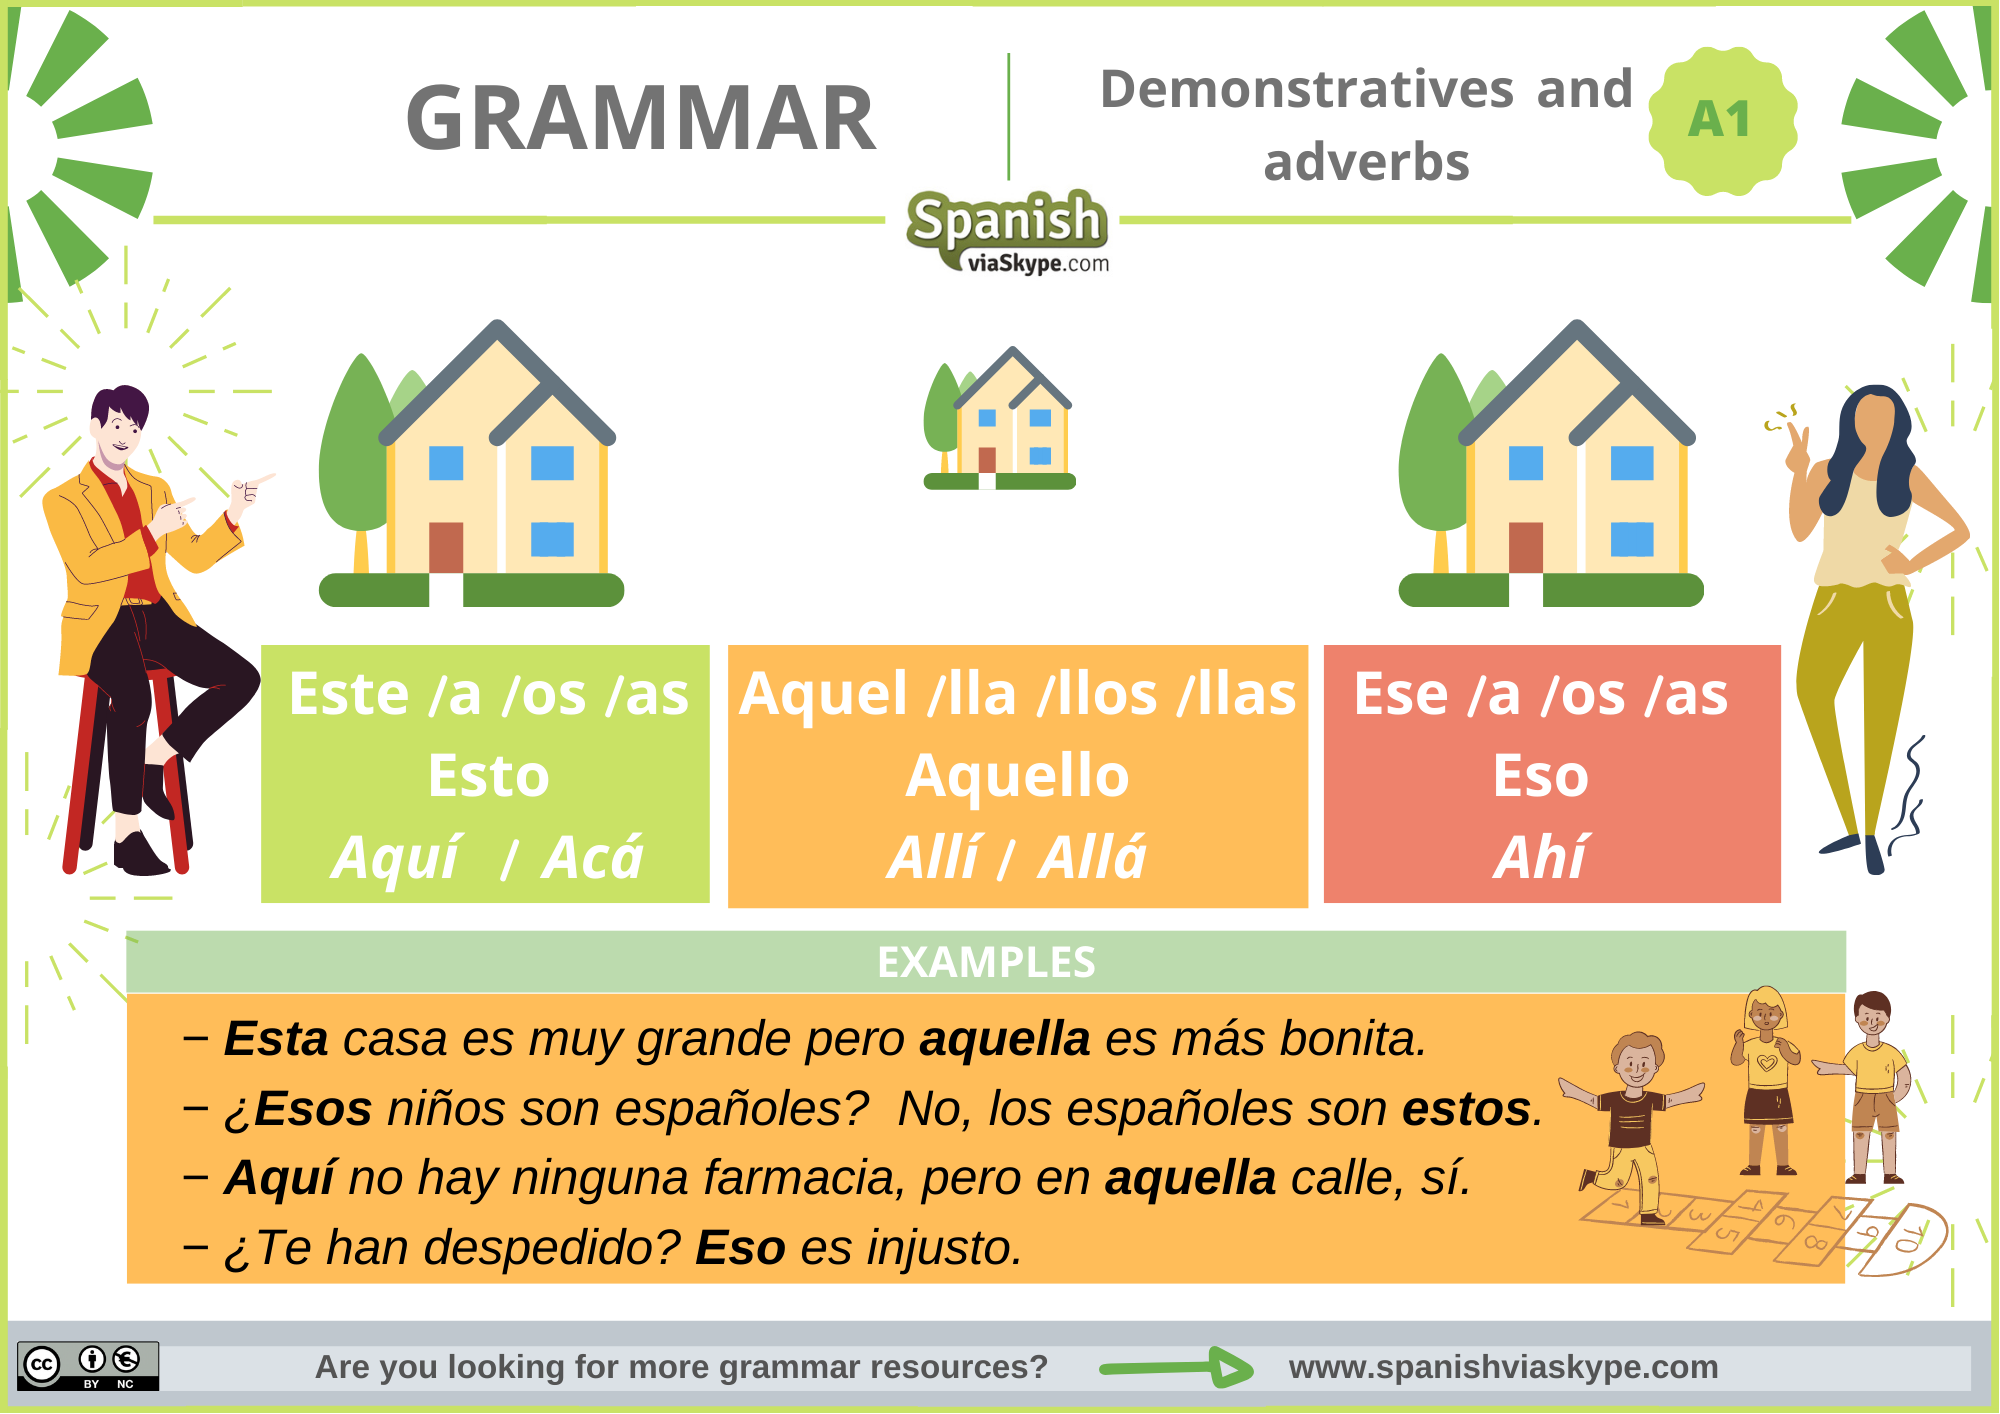 Infographic about demonstratives and adverbs of place in Spanish